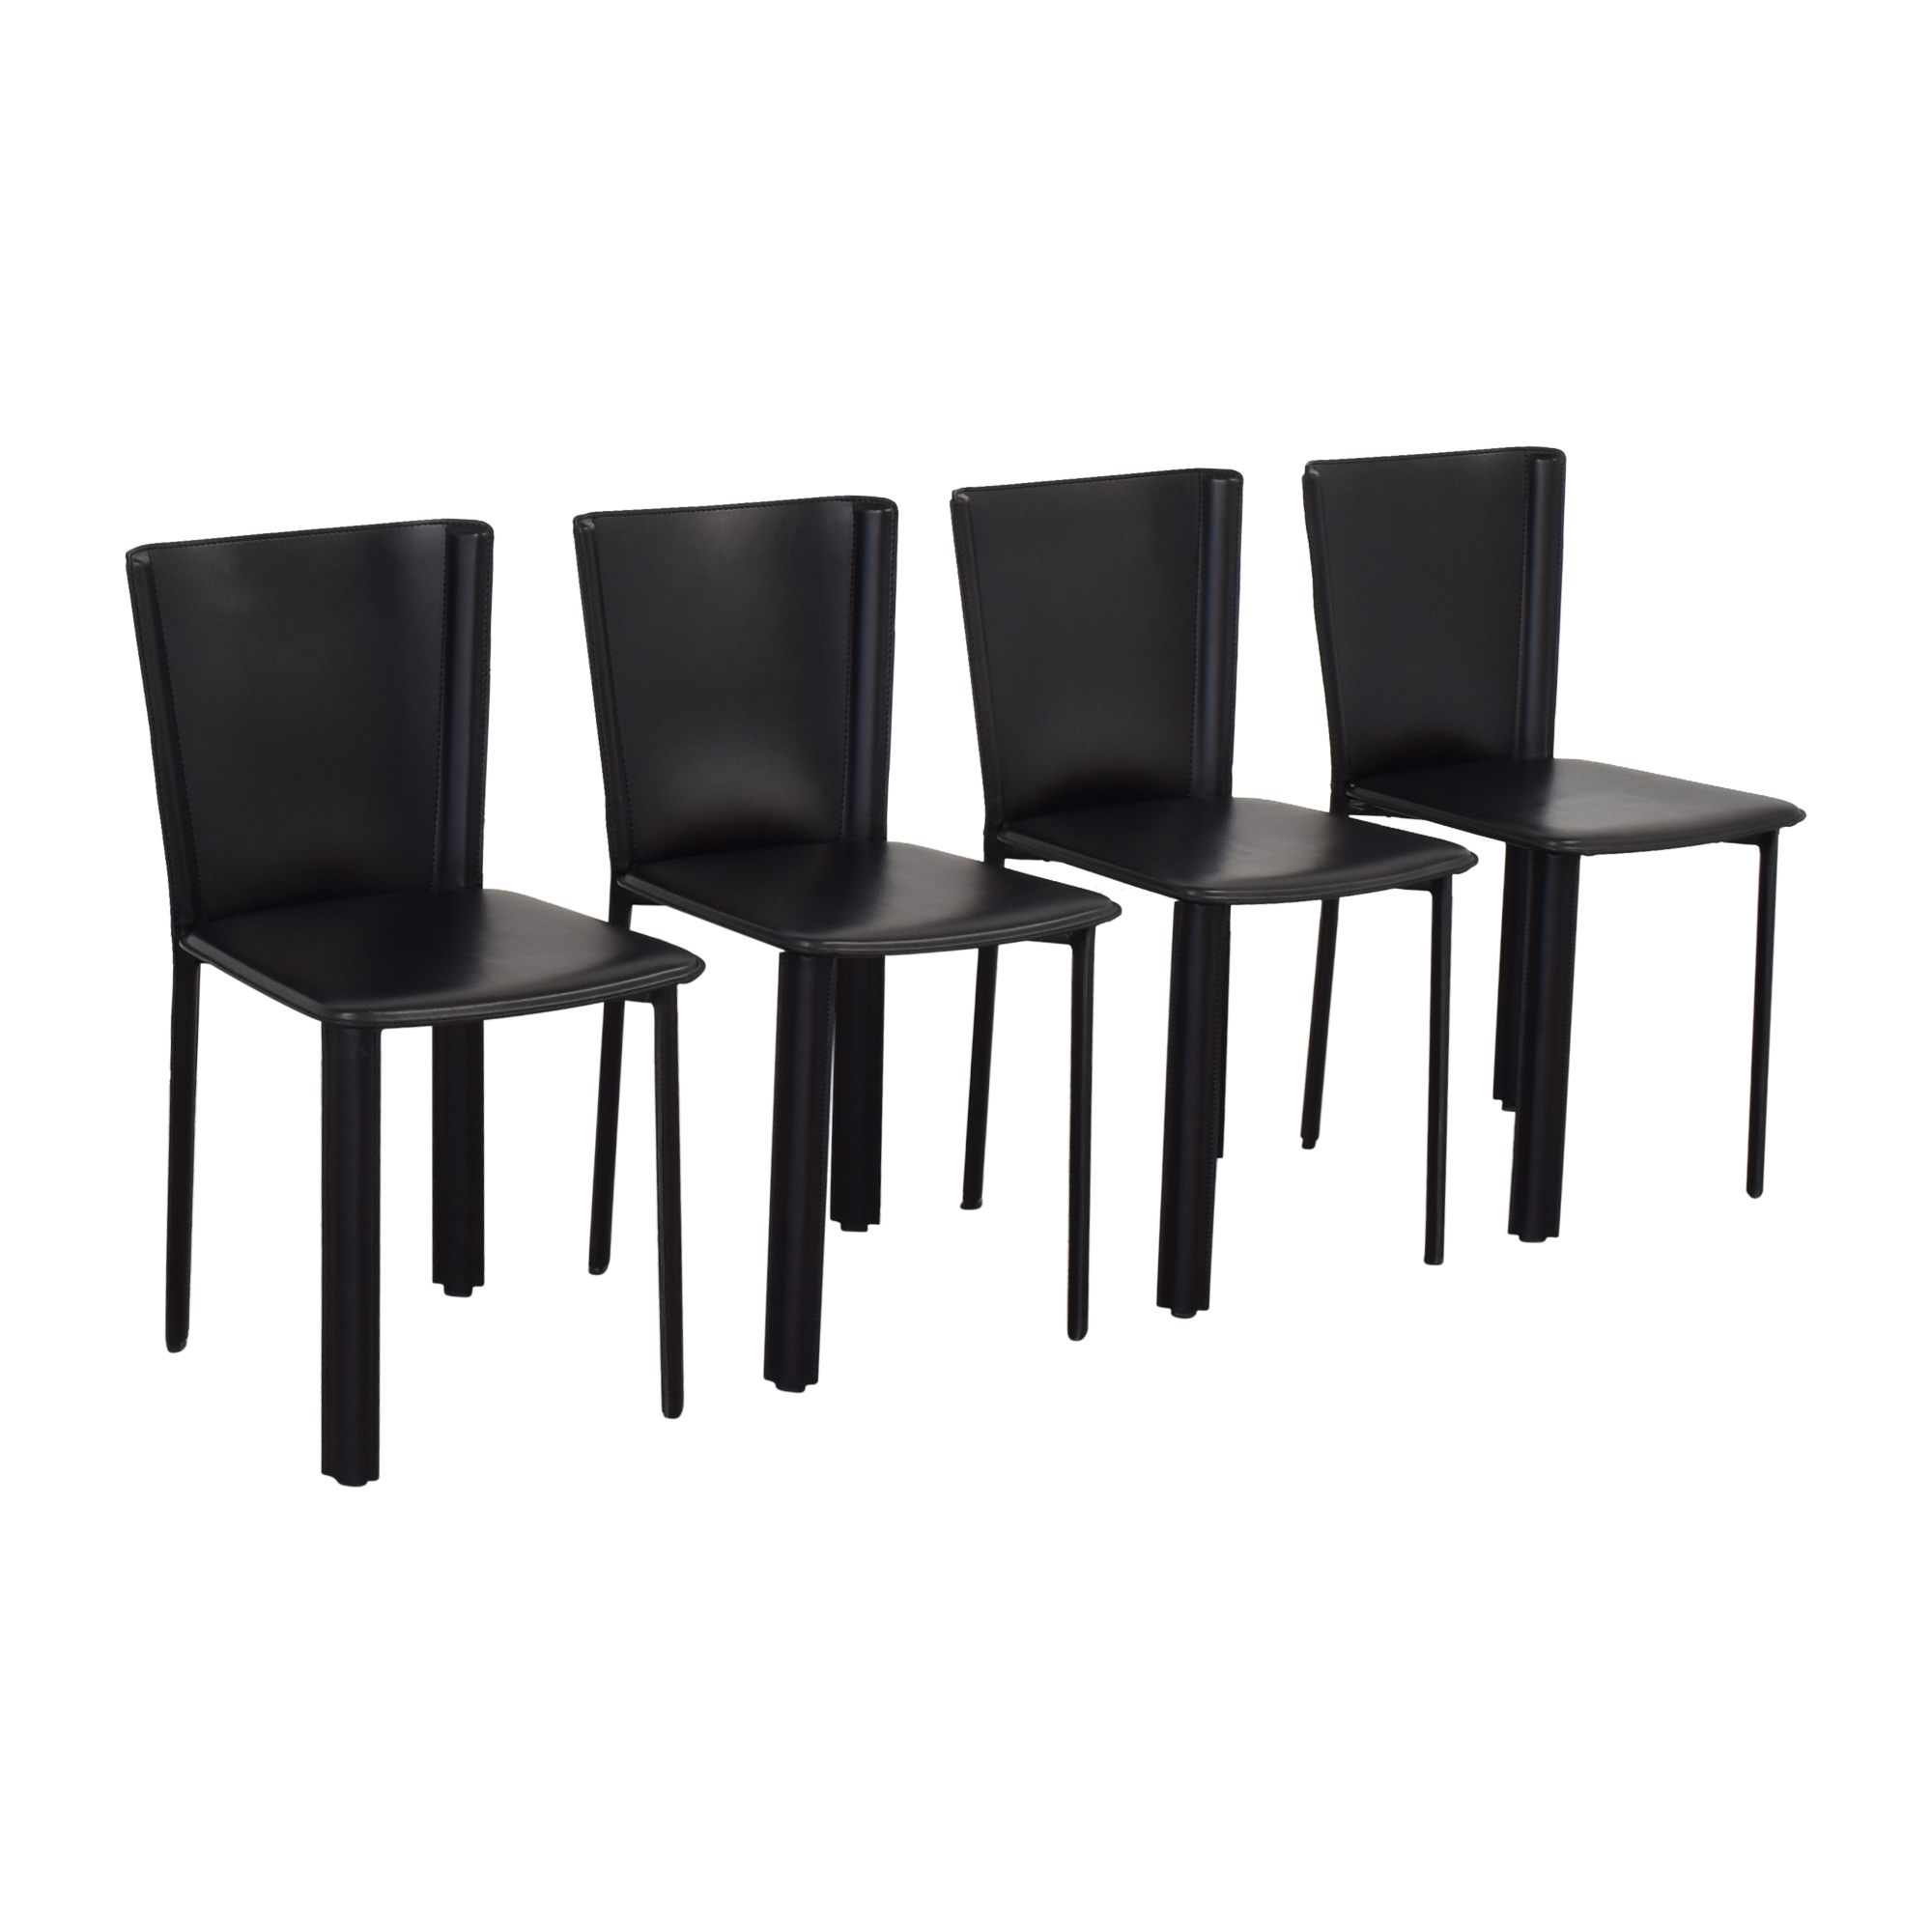 Design Within Reach Design Within Reach Frag Allegro Dining Chairs dimensions